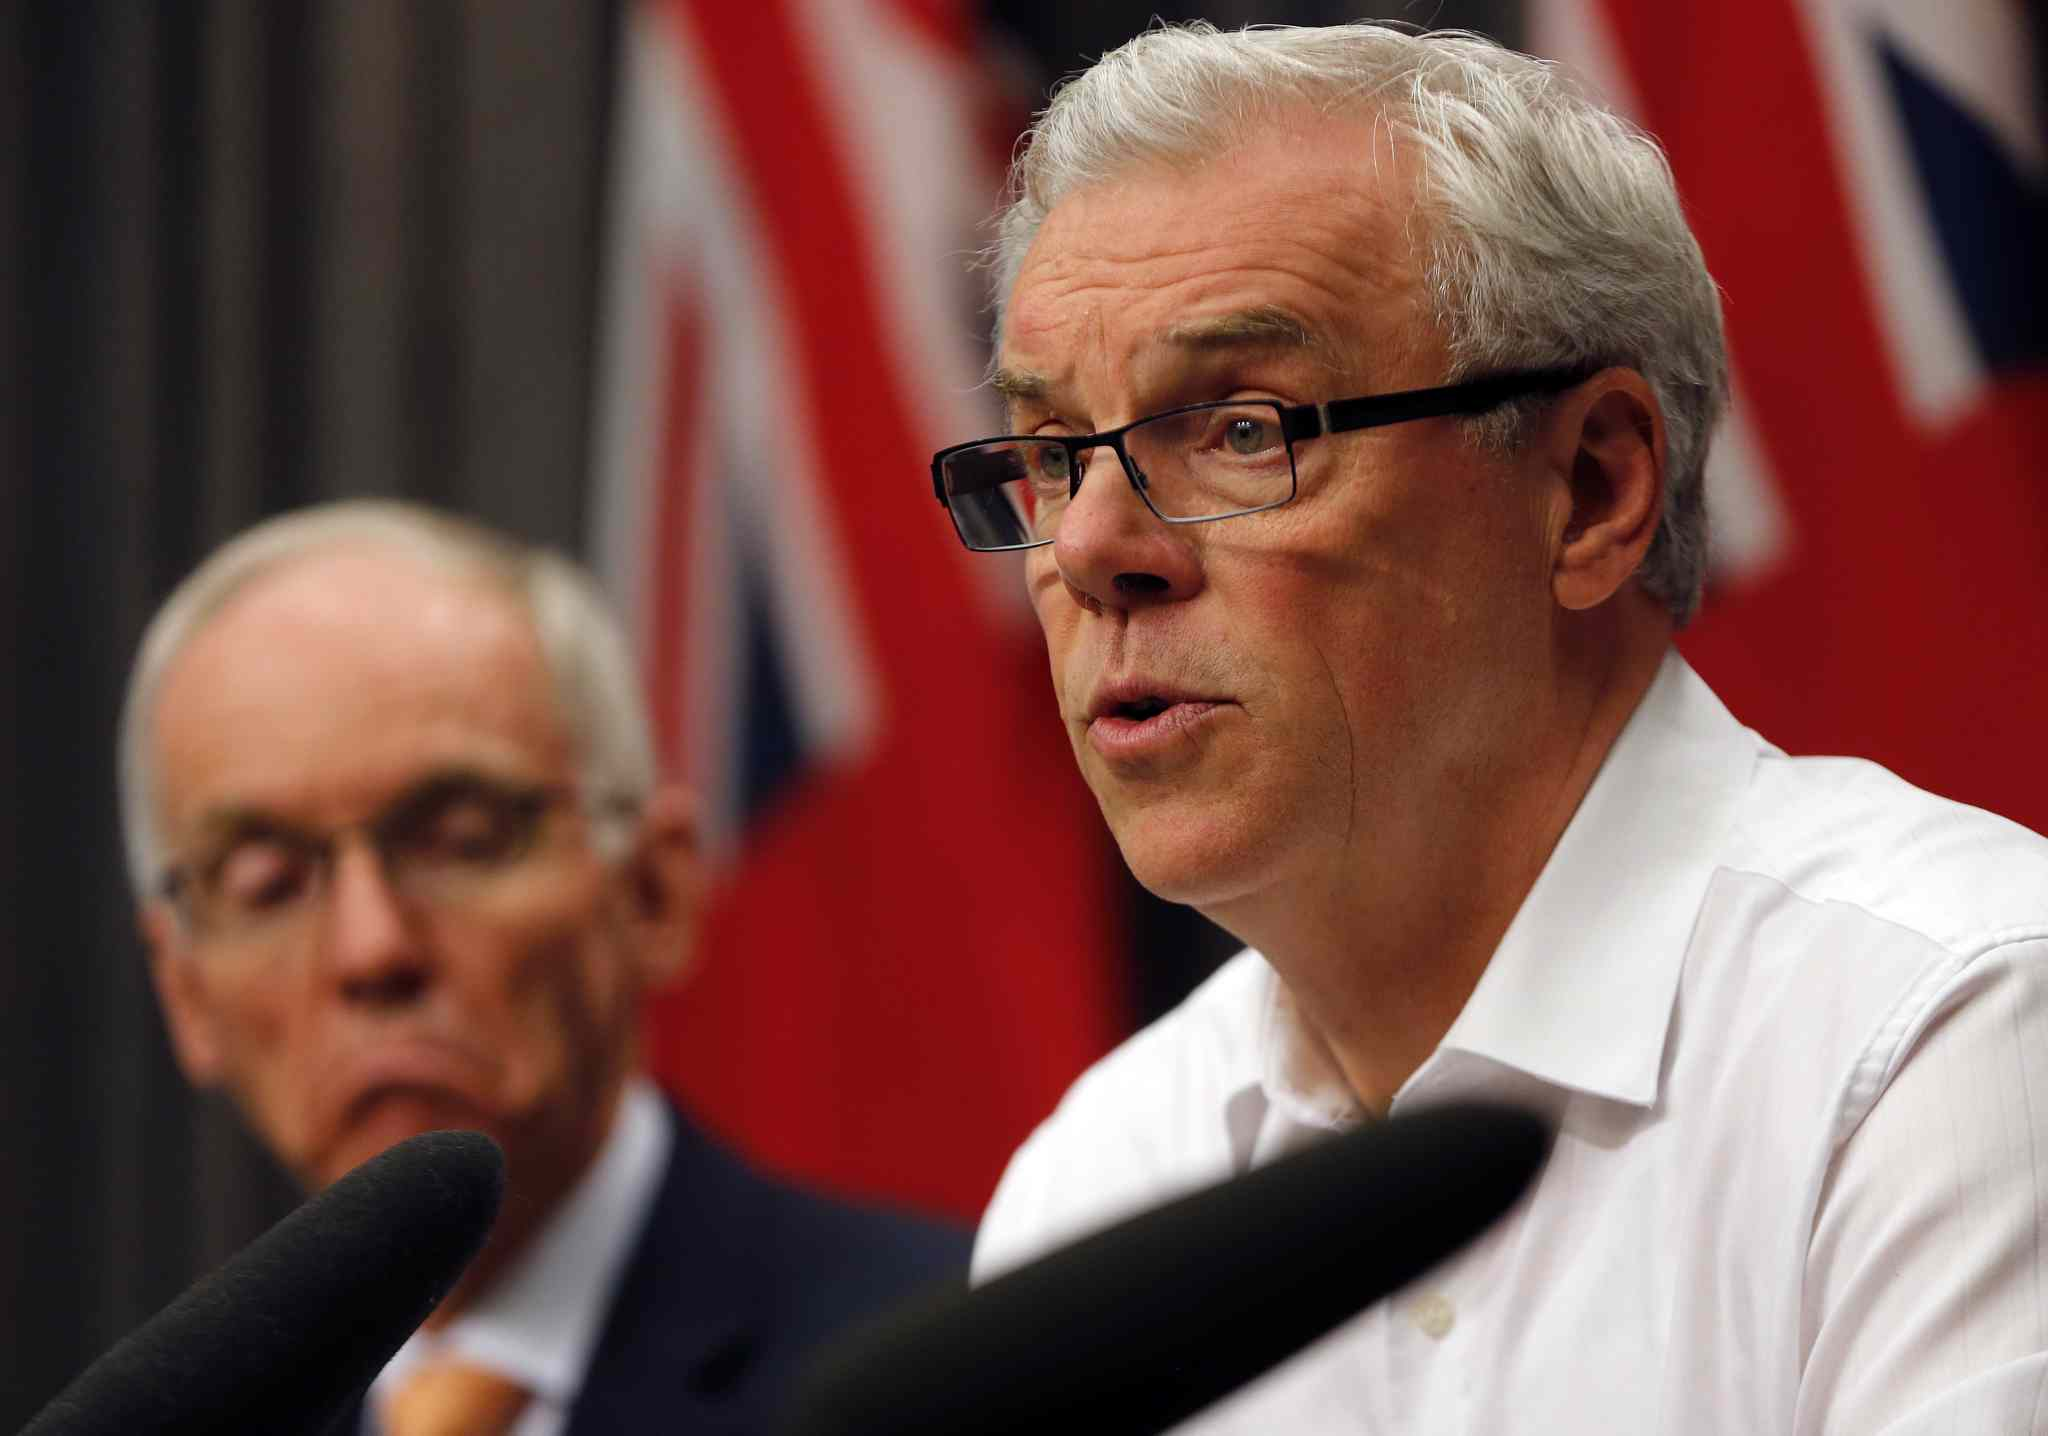 On Friday, Manitoba Premier Greg Selinger announced the province will call a state of emergency.